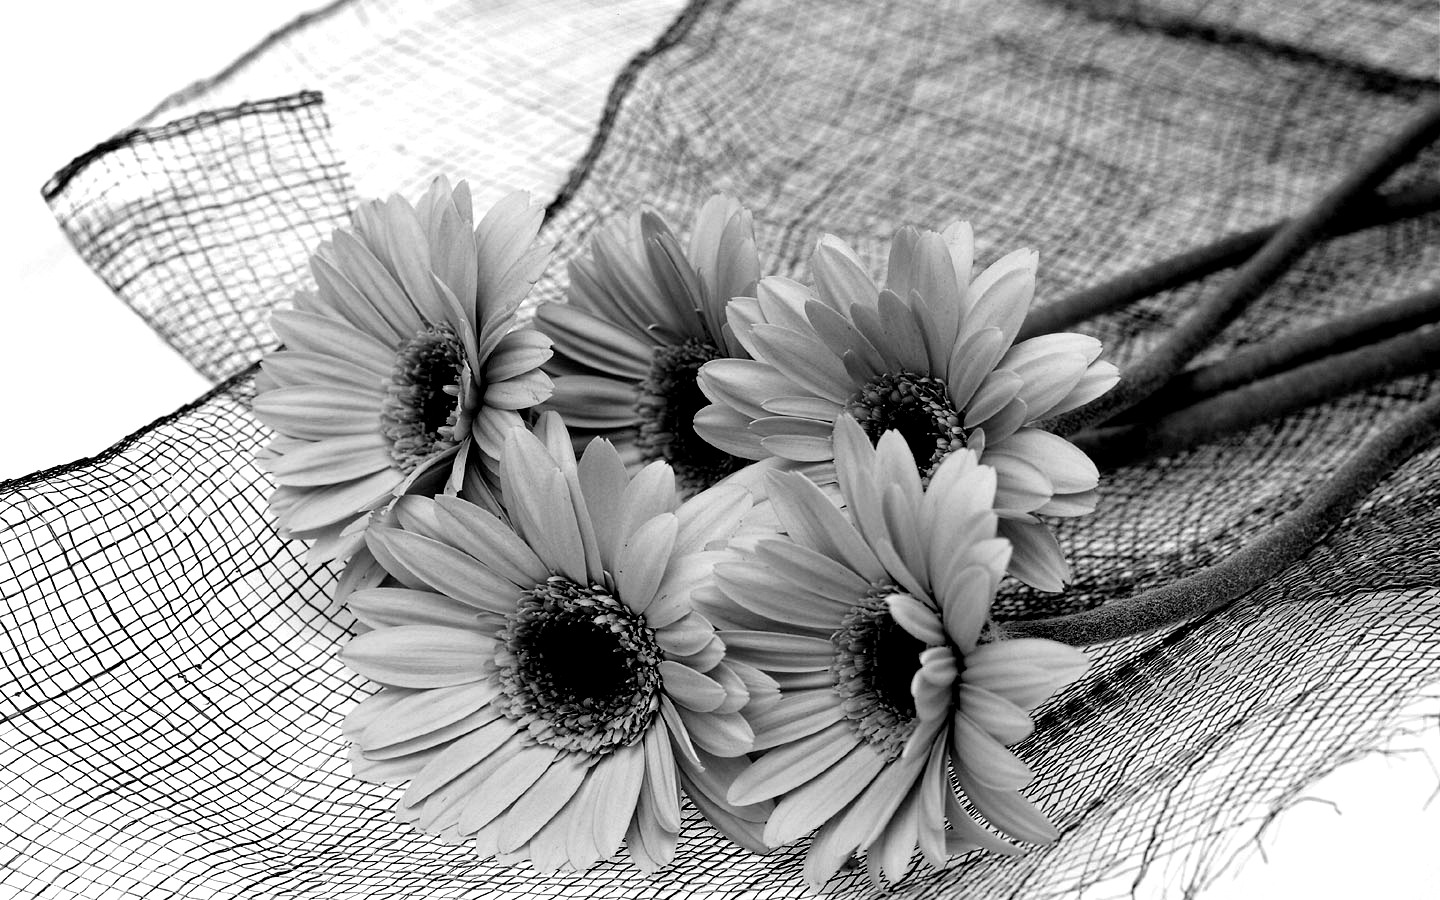 Flowers black and white photos | Black and White Photography: black-and-whitephotos.blogspot.com/2012/08/flowers-black-and-white...